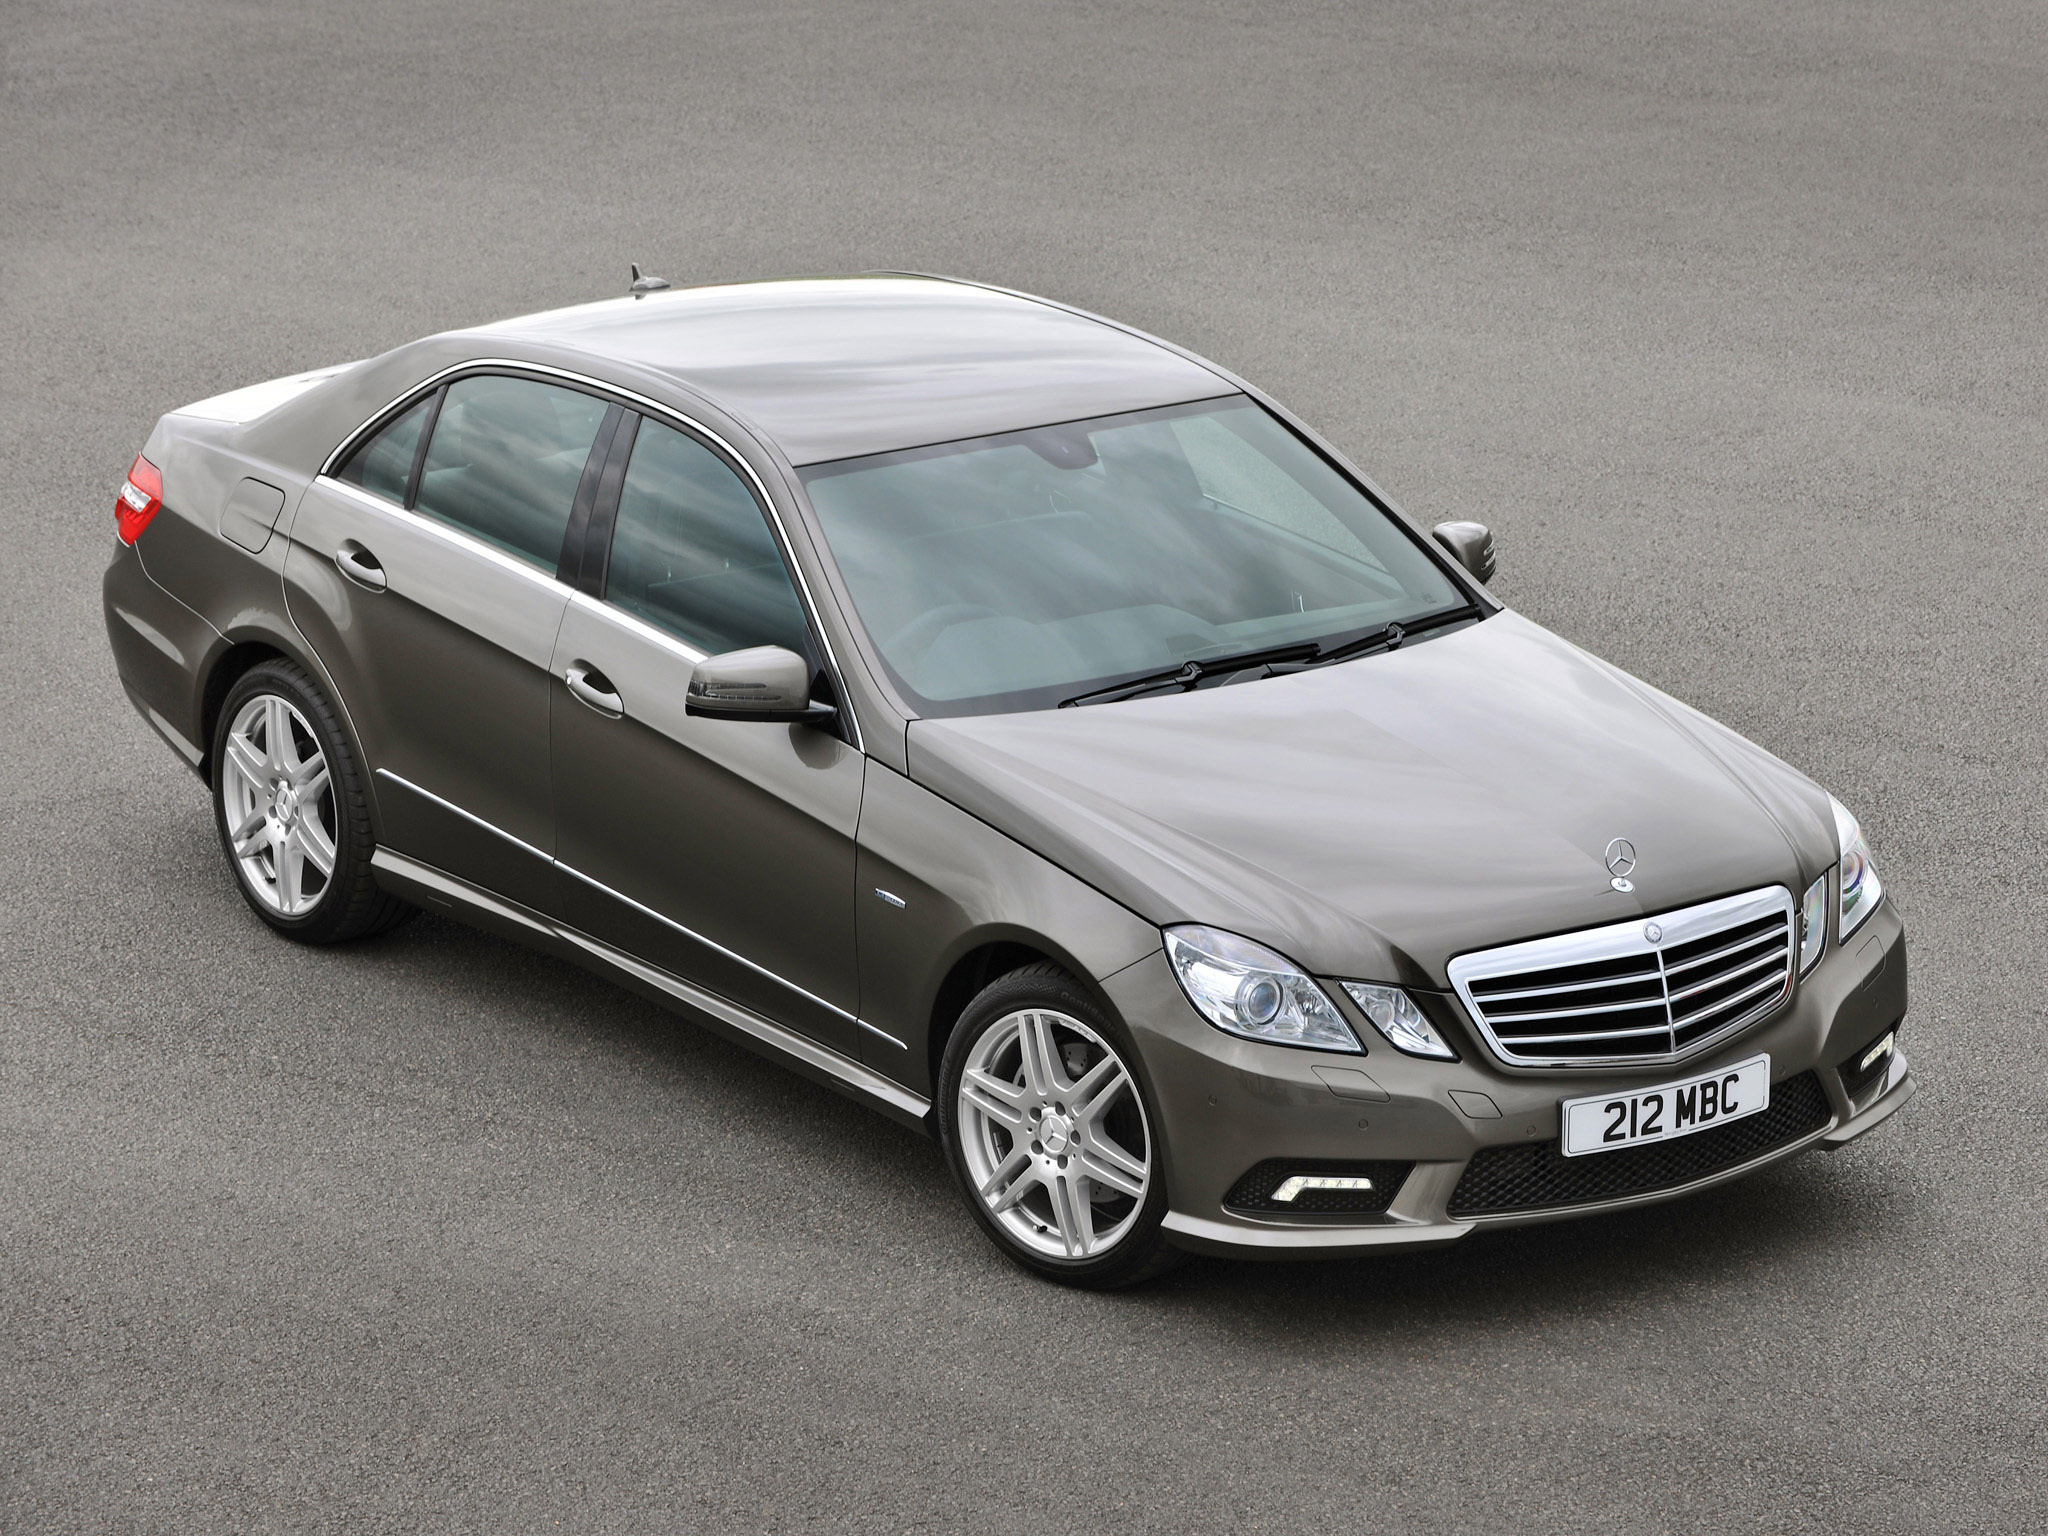 Mercedes e klasse e500 amg sports package uk w212 2009 for Mercedes benz e class 250